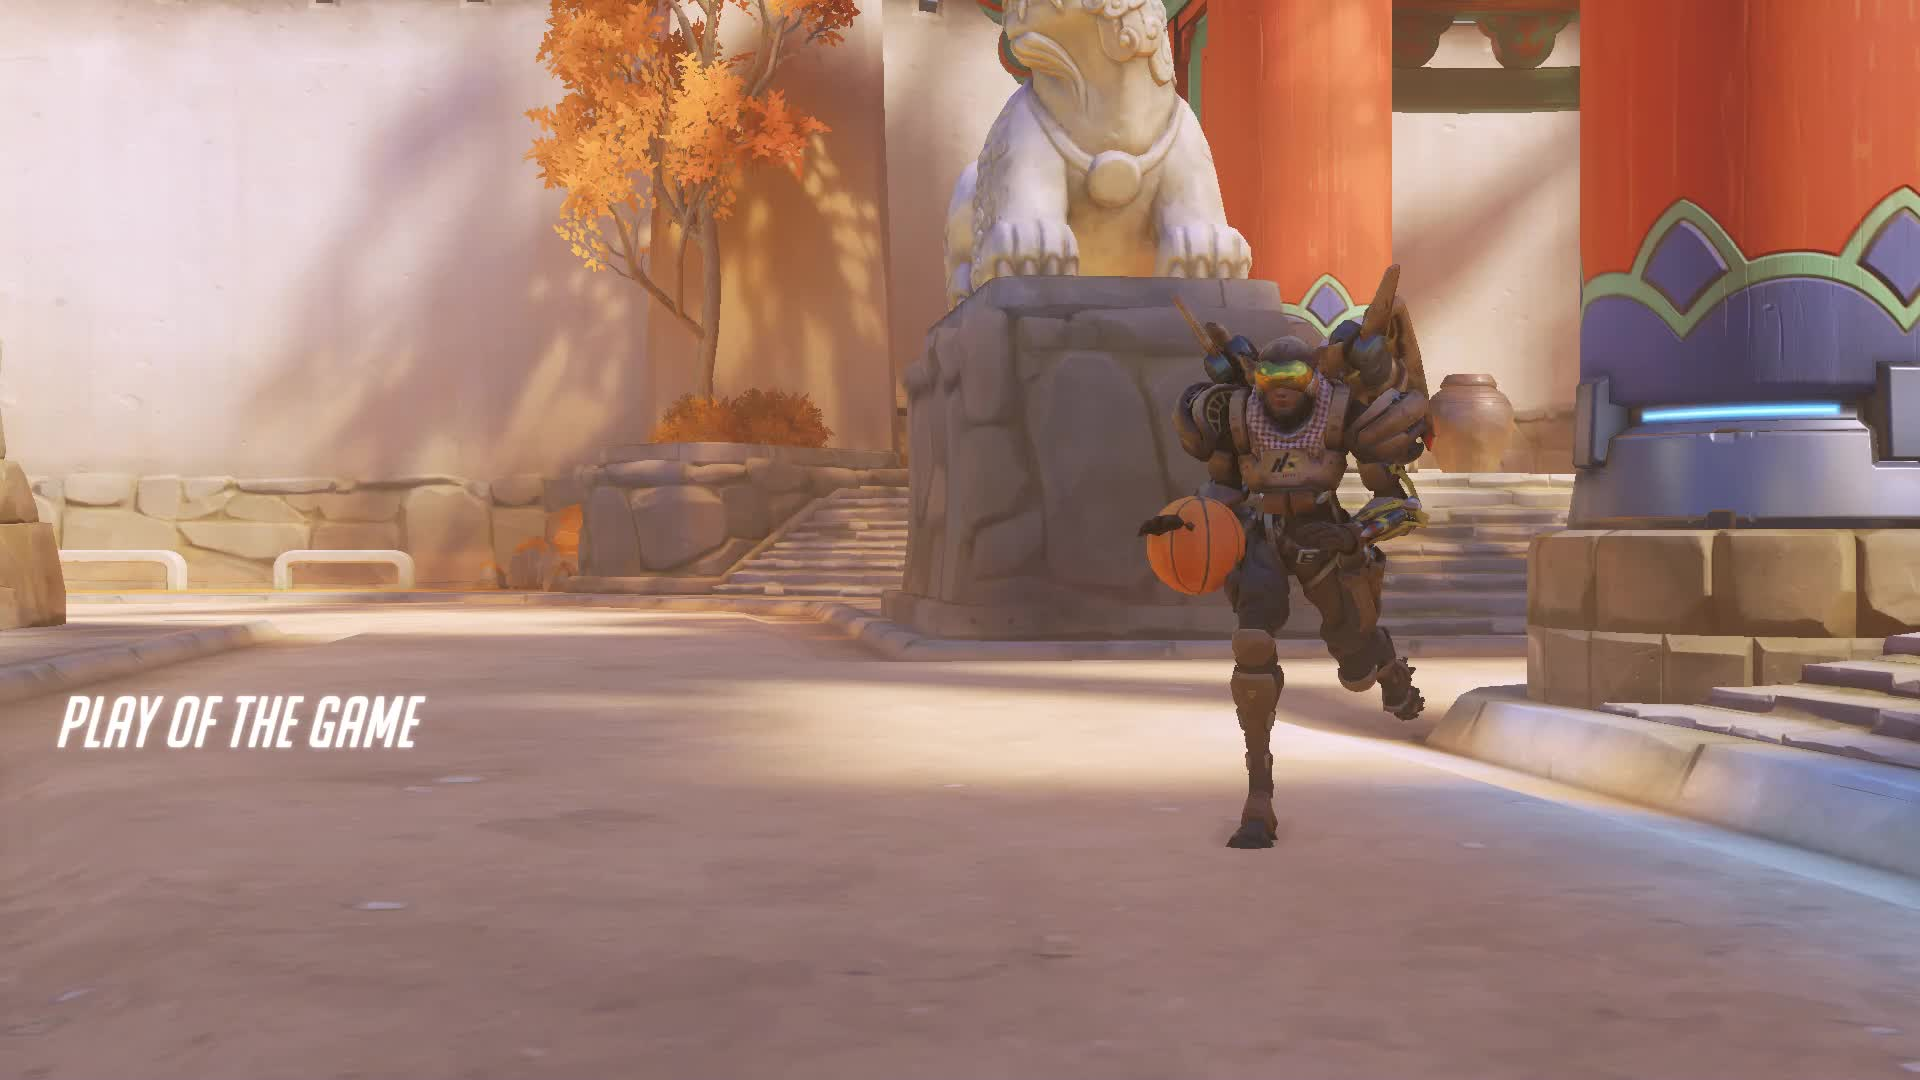 overwatch, pharah, potg, who is magne 19-01-23 21-37-48 GIFs